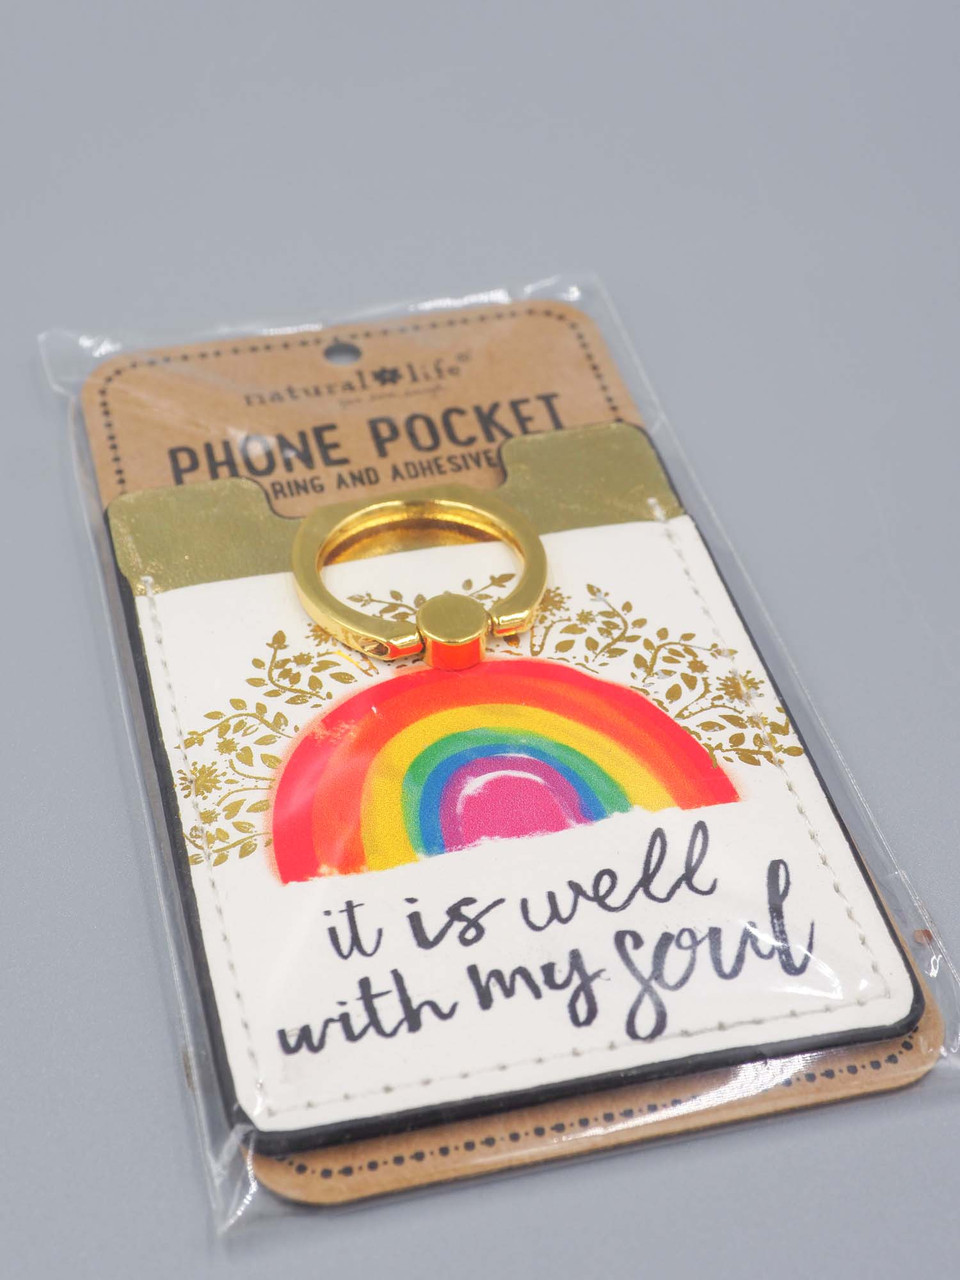 It is well with my soul phone pocket ring natural life